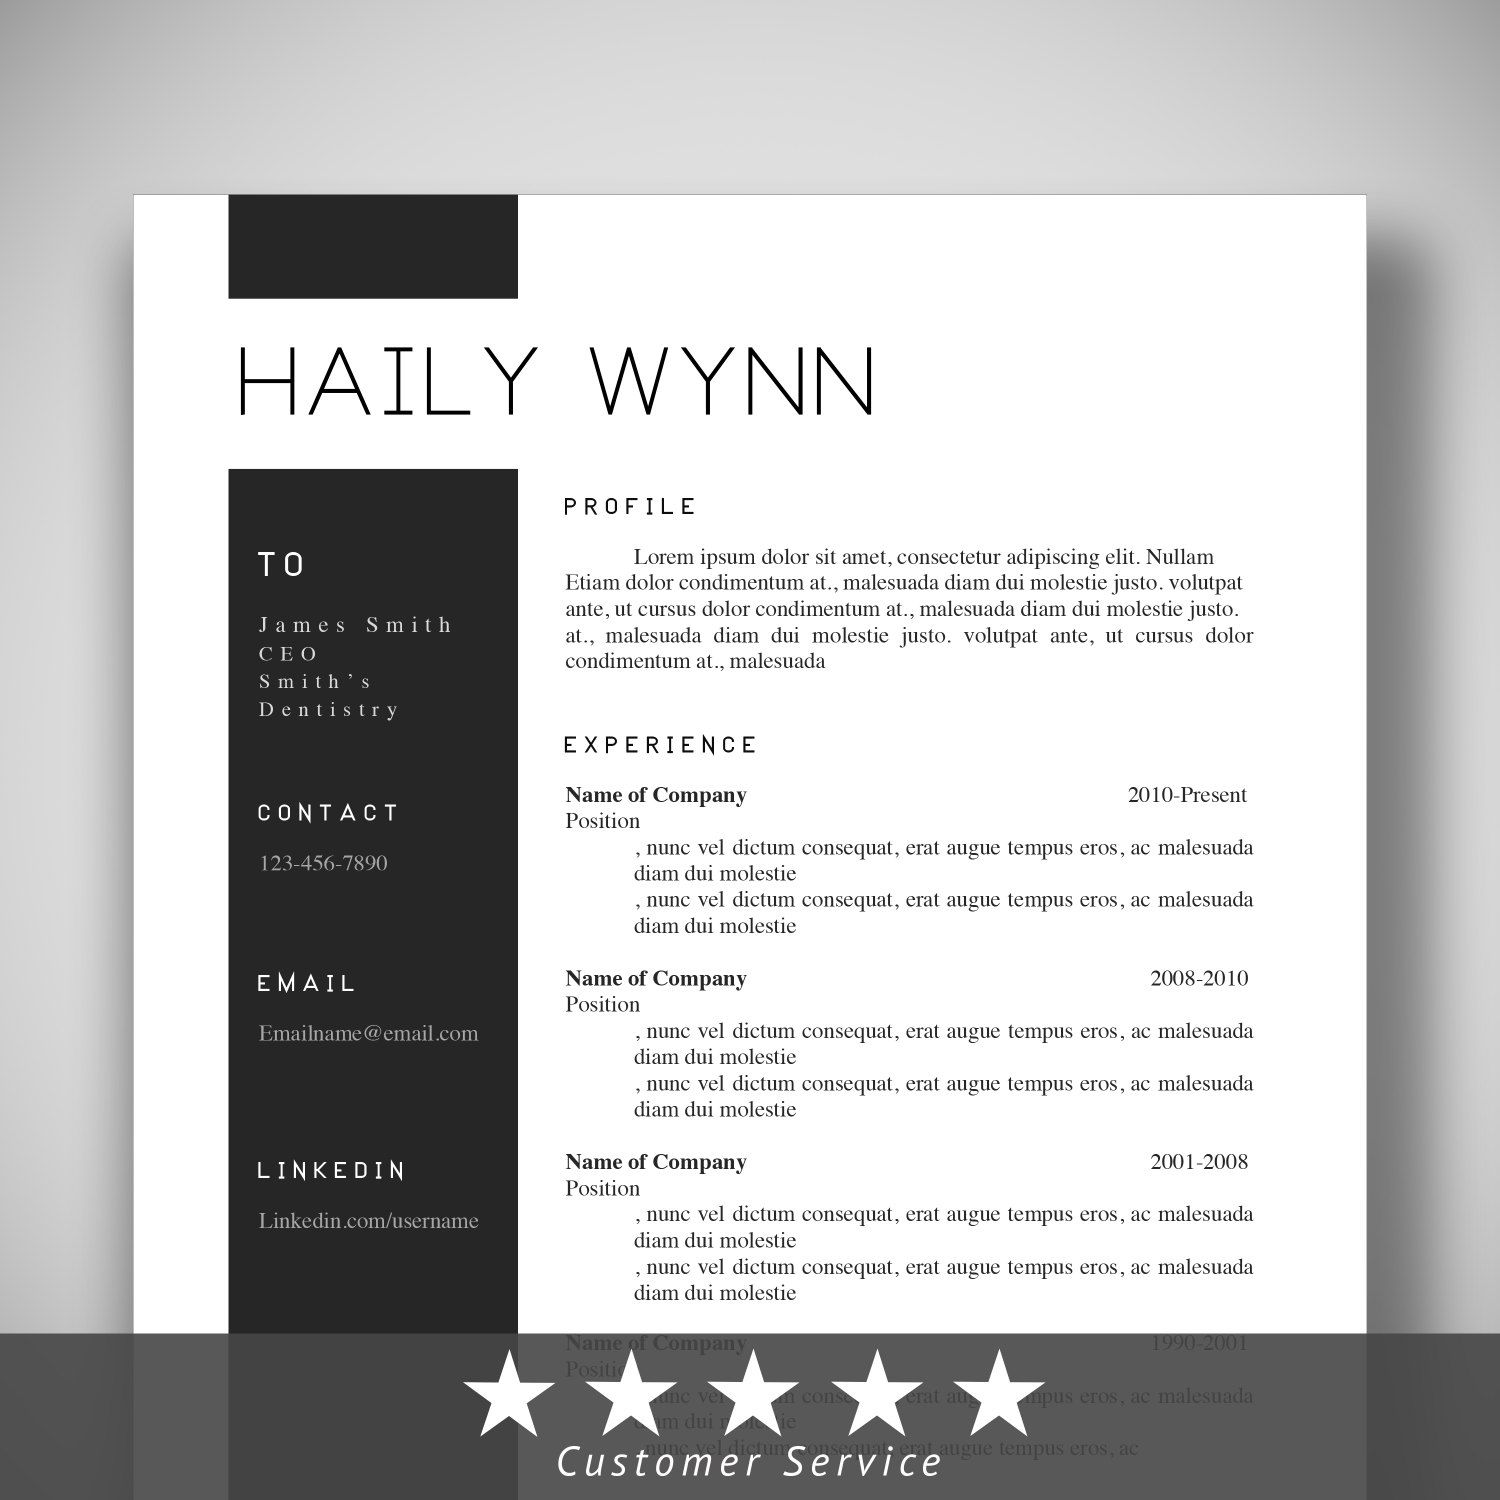 Professional Templates Resume Cv Template Professional Templates Instand Download Microsoft Word Customizable Beauti